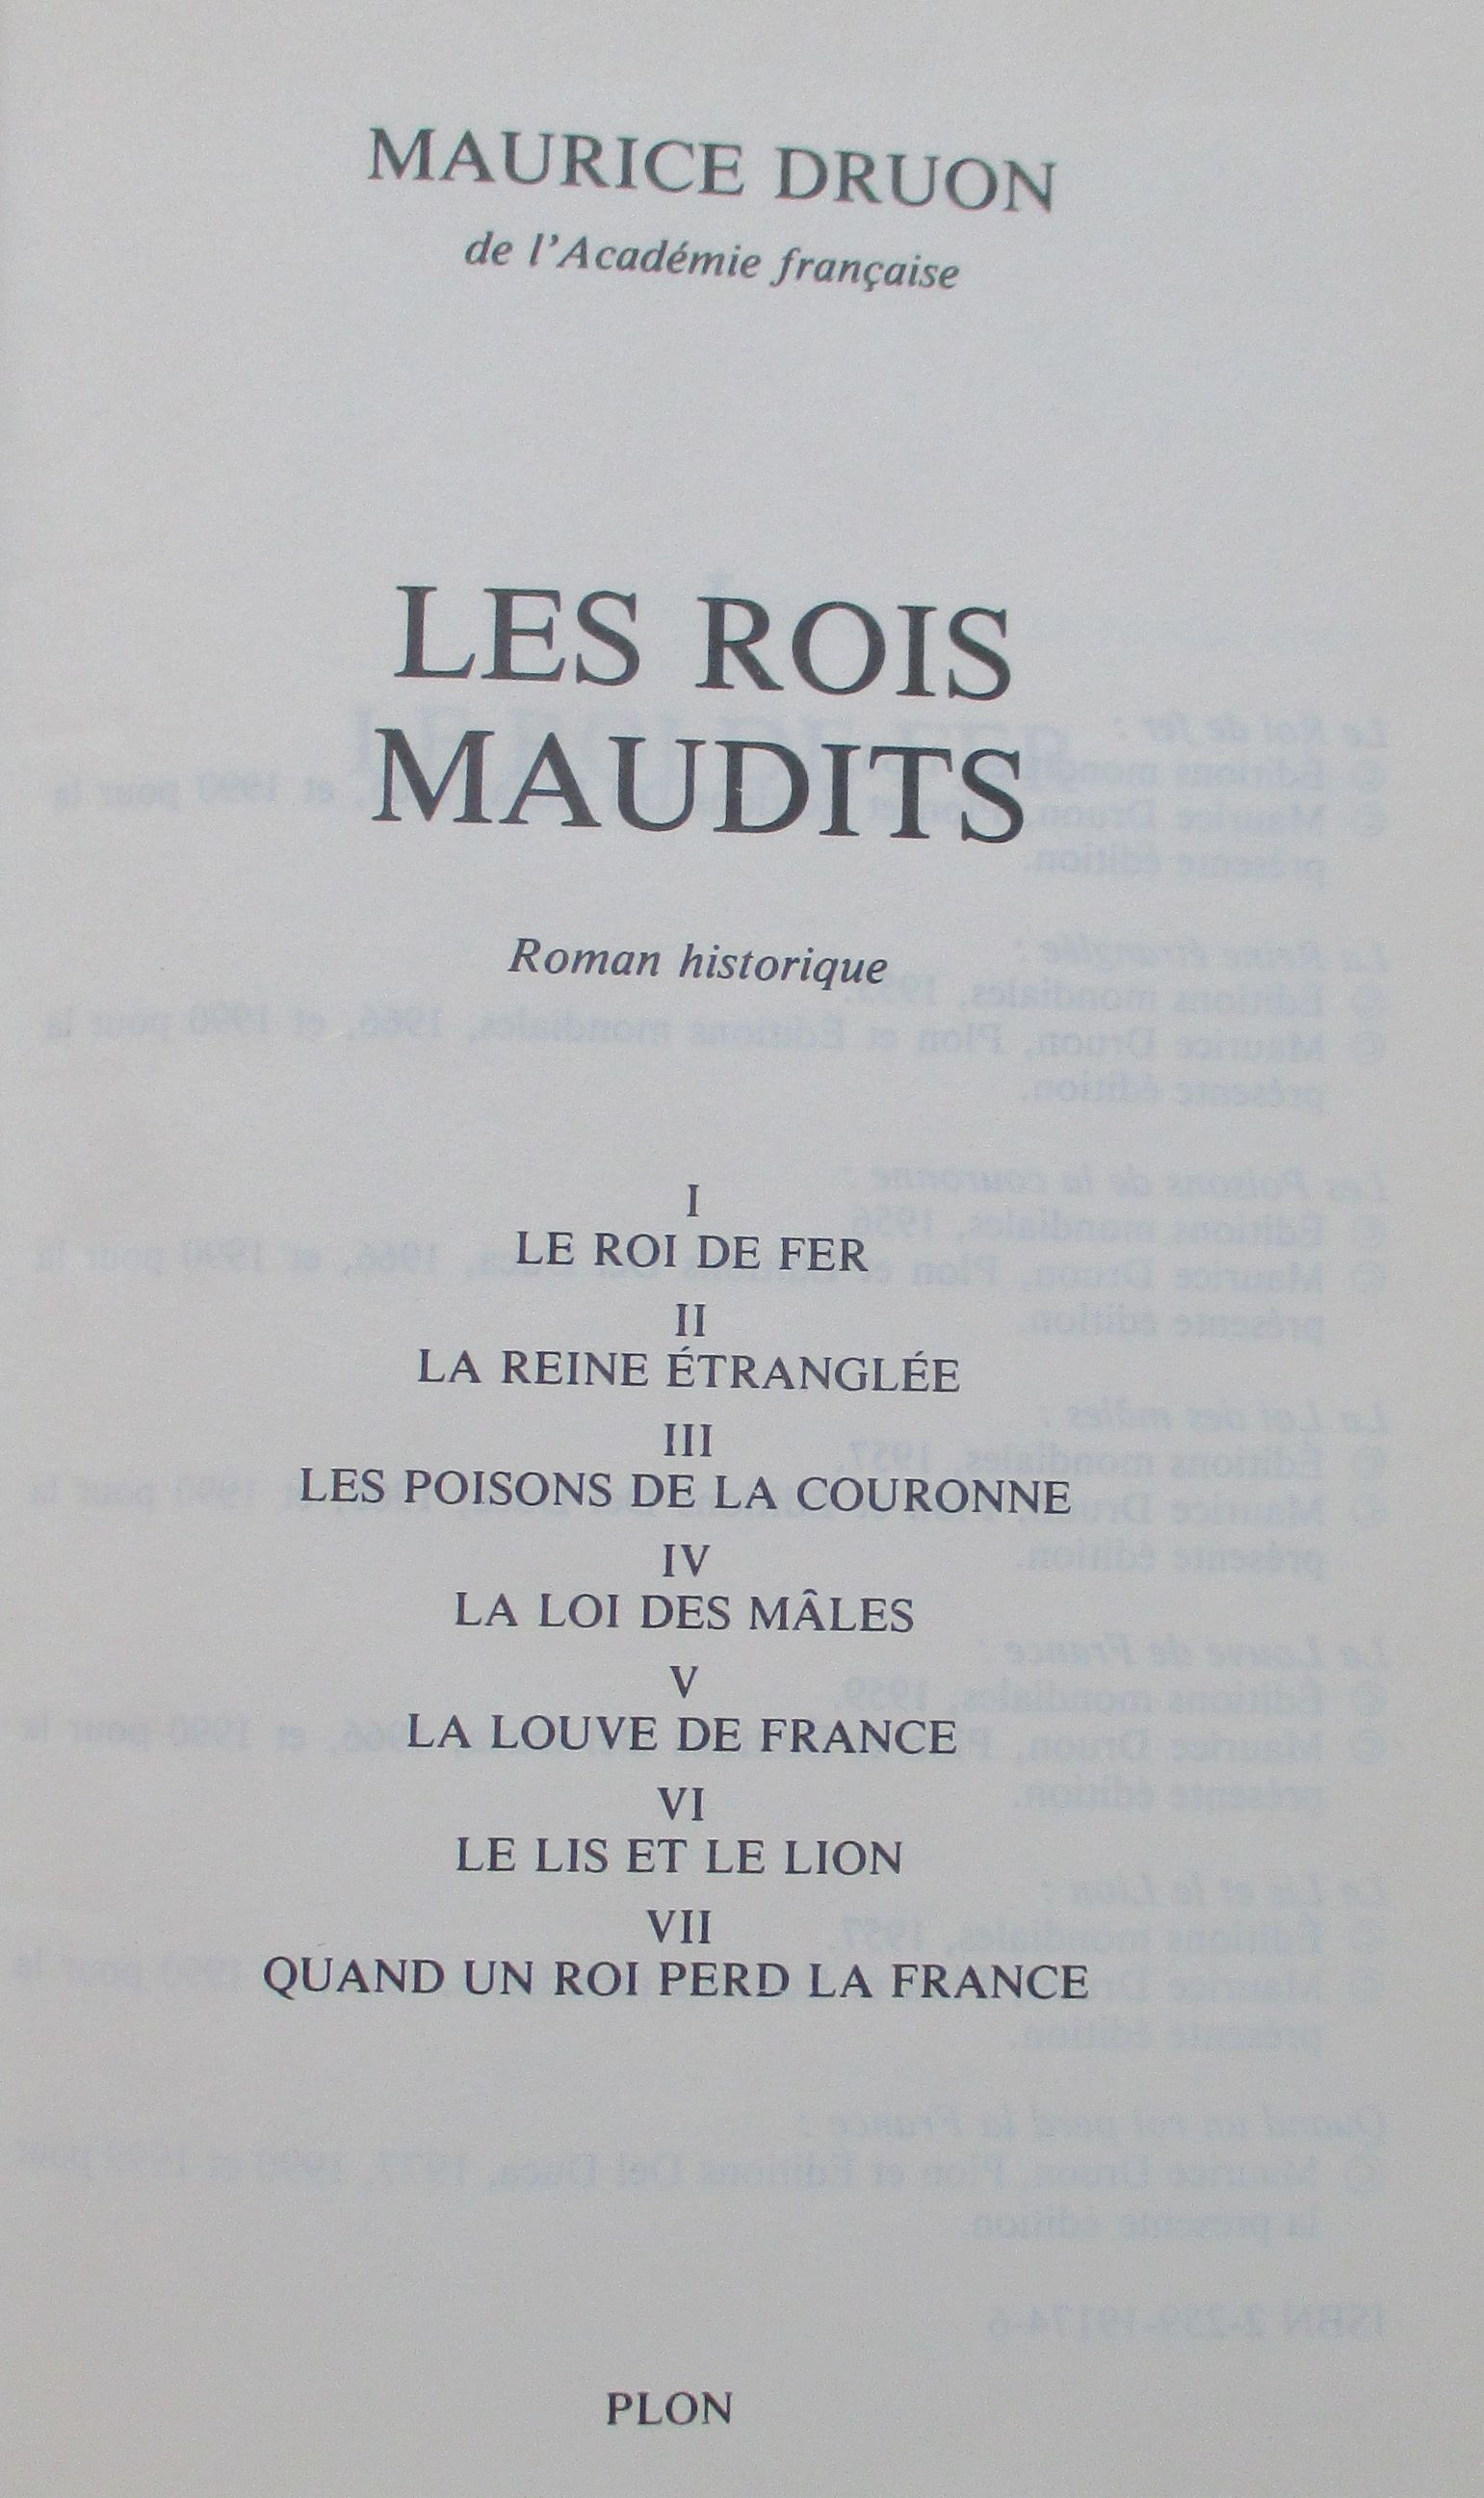 Title page of Maurice Druon, Les rois maudits